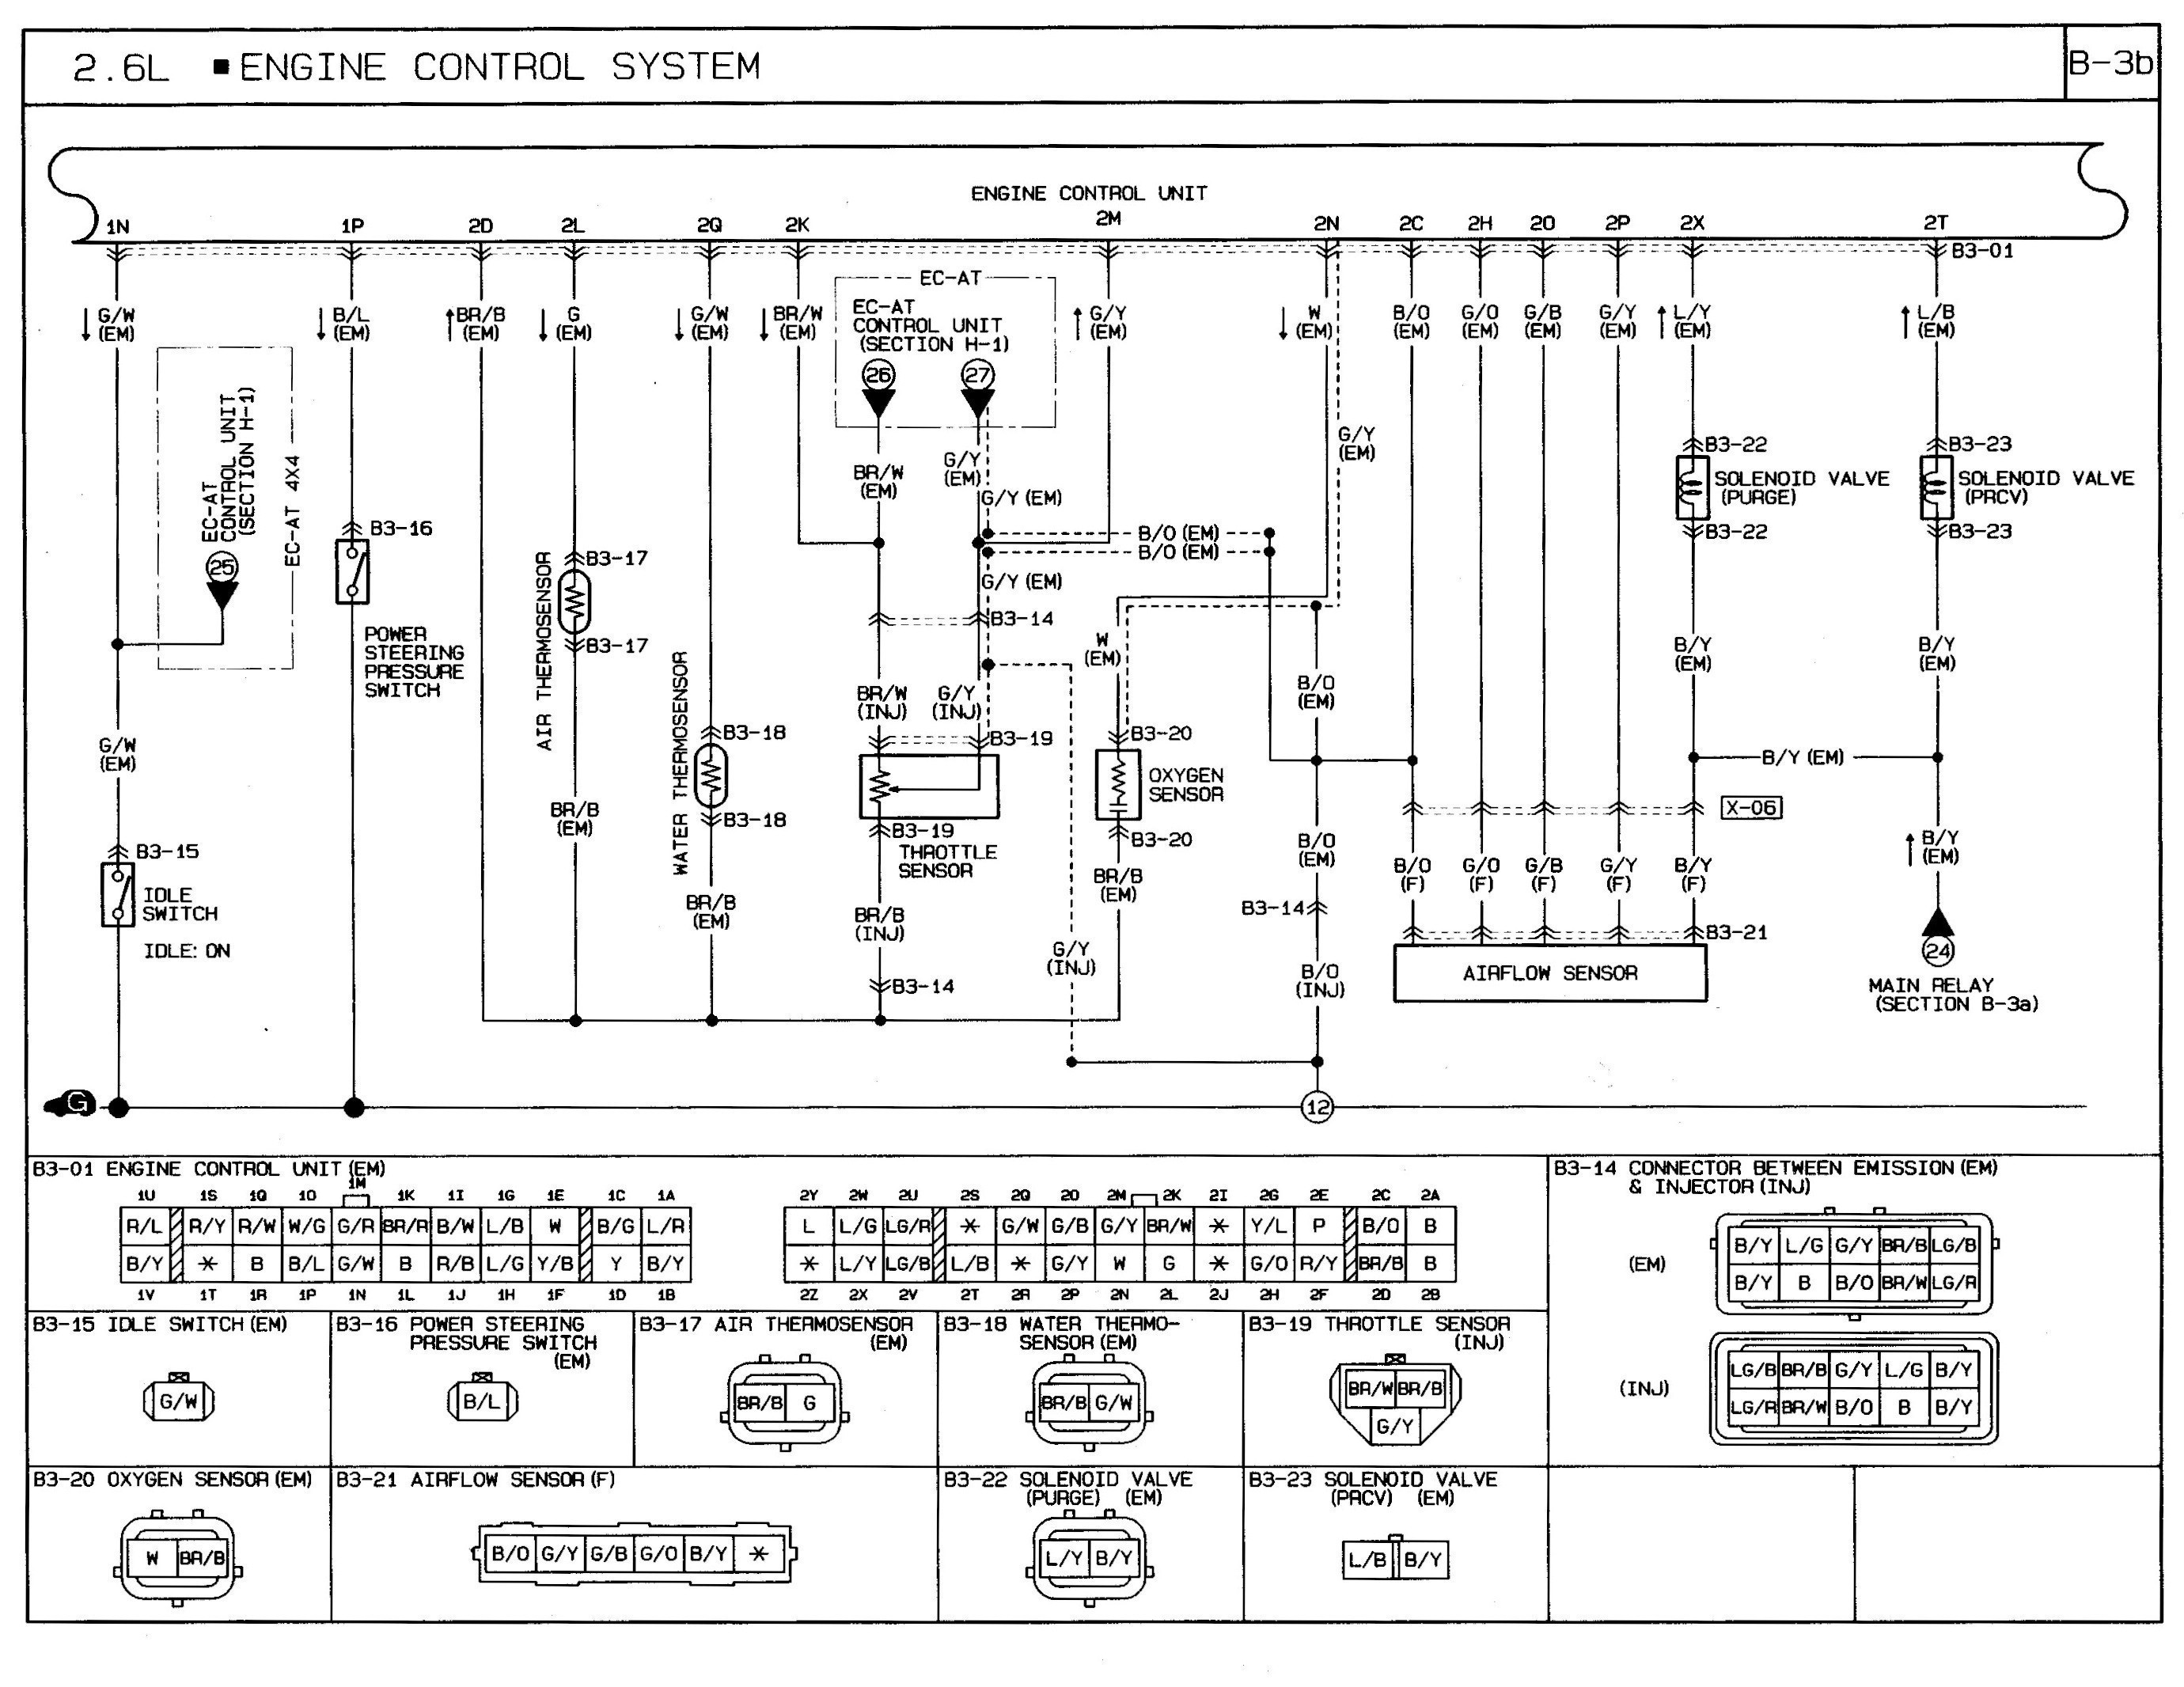 mazda 3 ac wiring diagram wiring library 2010 Mazda 3 Wiring Diagram Power Seat 2010 mazda 3 engine diagram mazda 3 wiring harness diagram save 2010 mazda 6 wiring harness 2010 of 2010 mazda 3 engine diagram